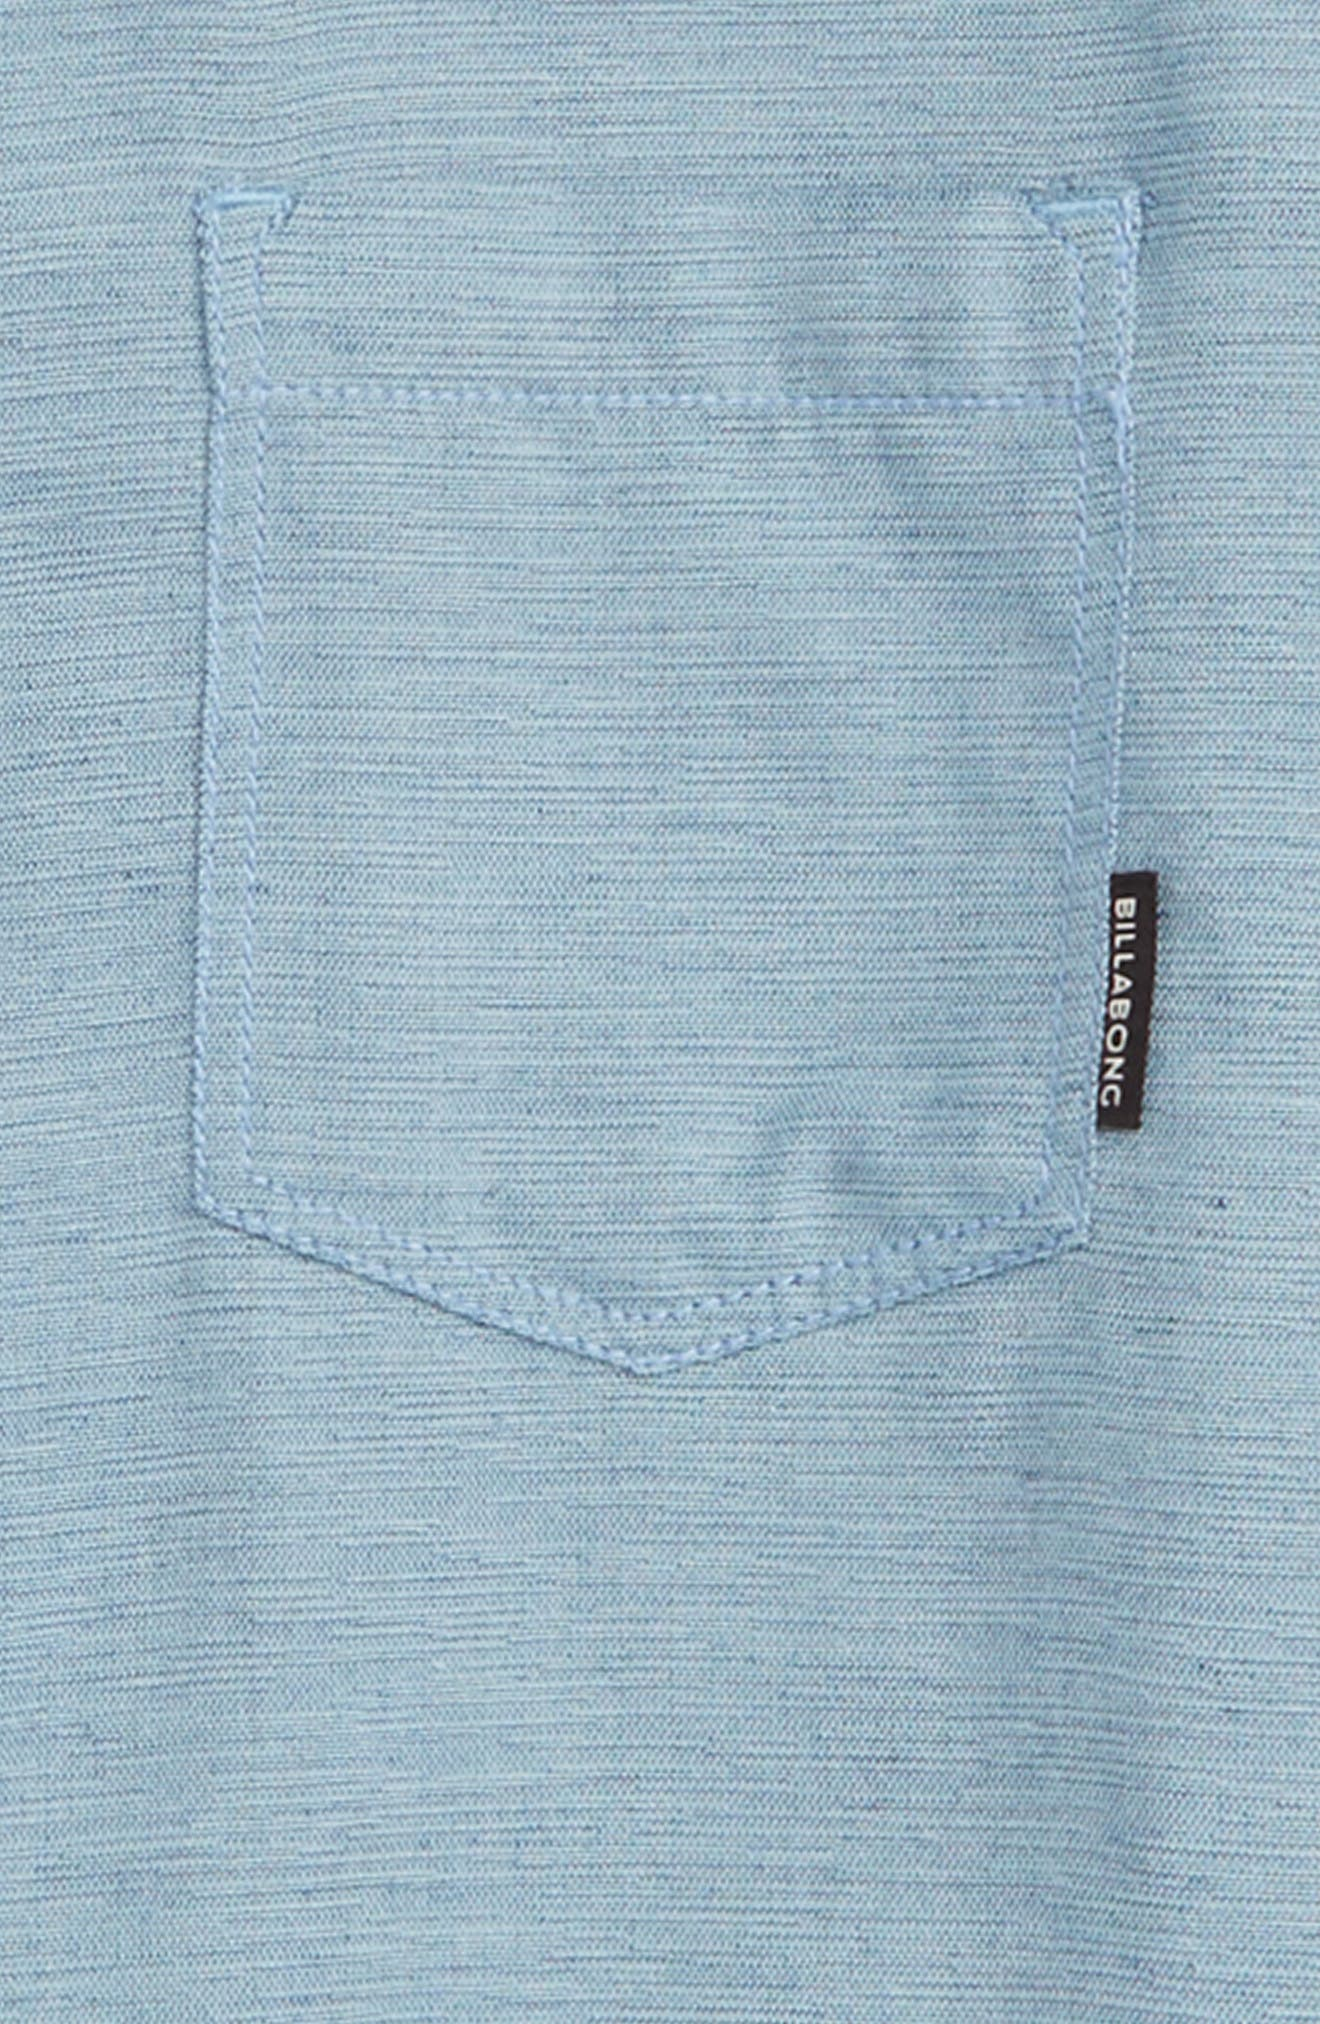 All Day Helix Woven Shirt,                             Alternate thumbnail 2, color,                             WASHED BLUE